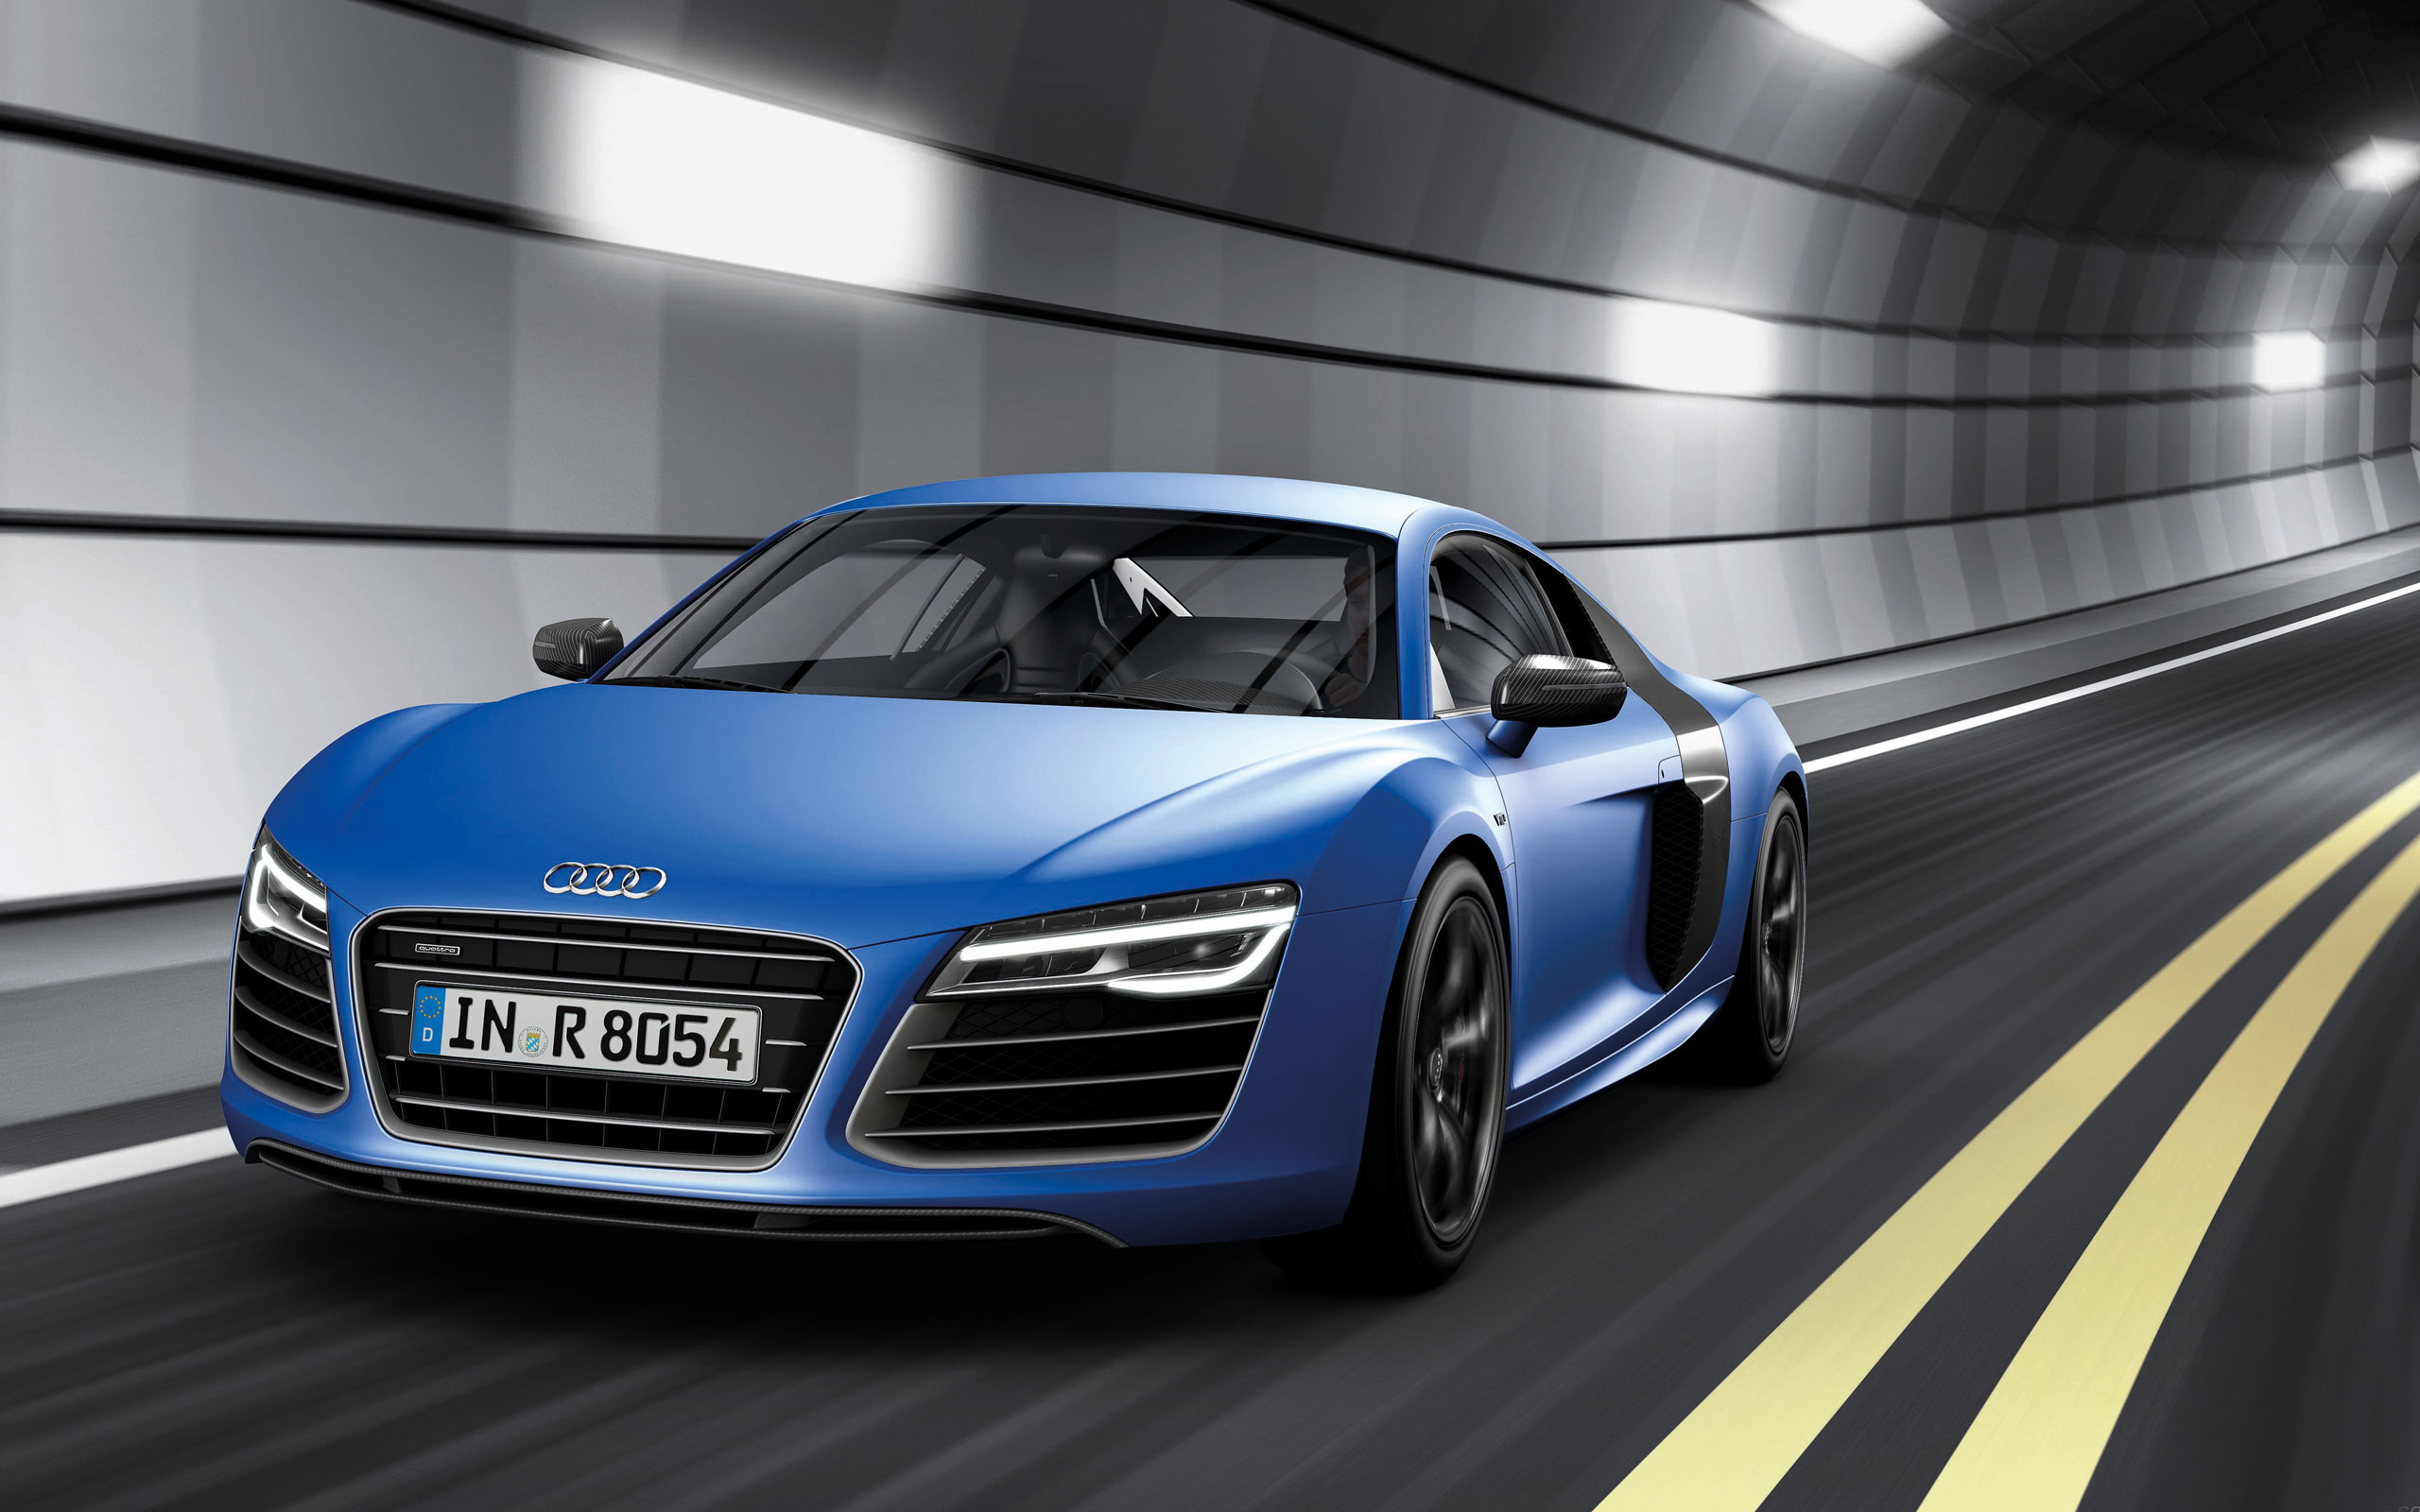 2013 Audi R8 V8 Wallpapers HD Wallpapers 2560x1600